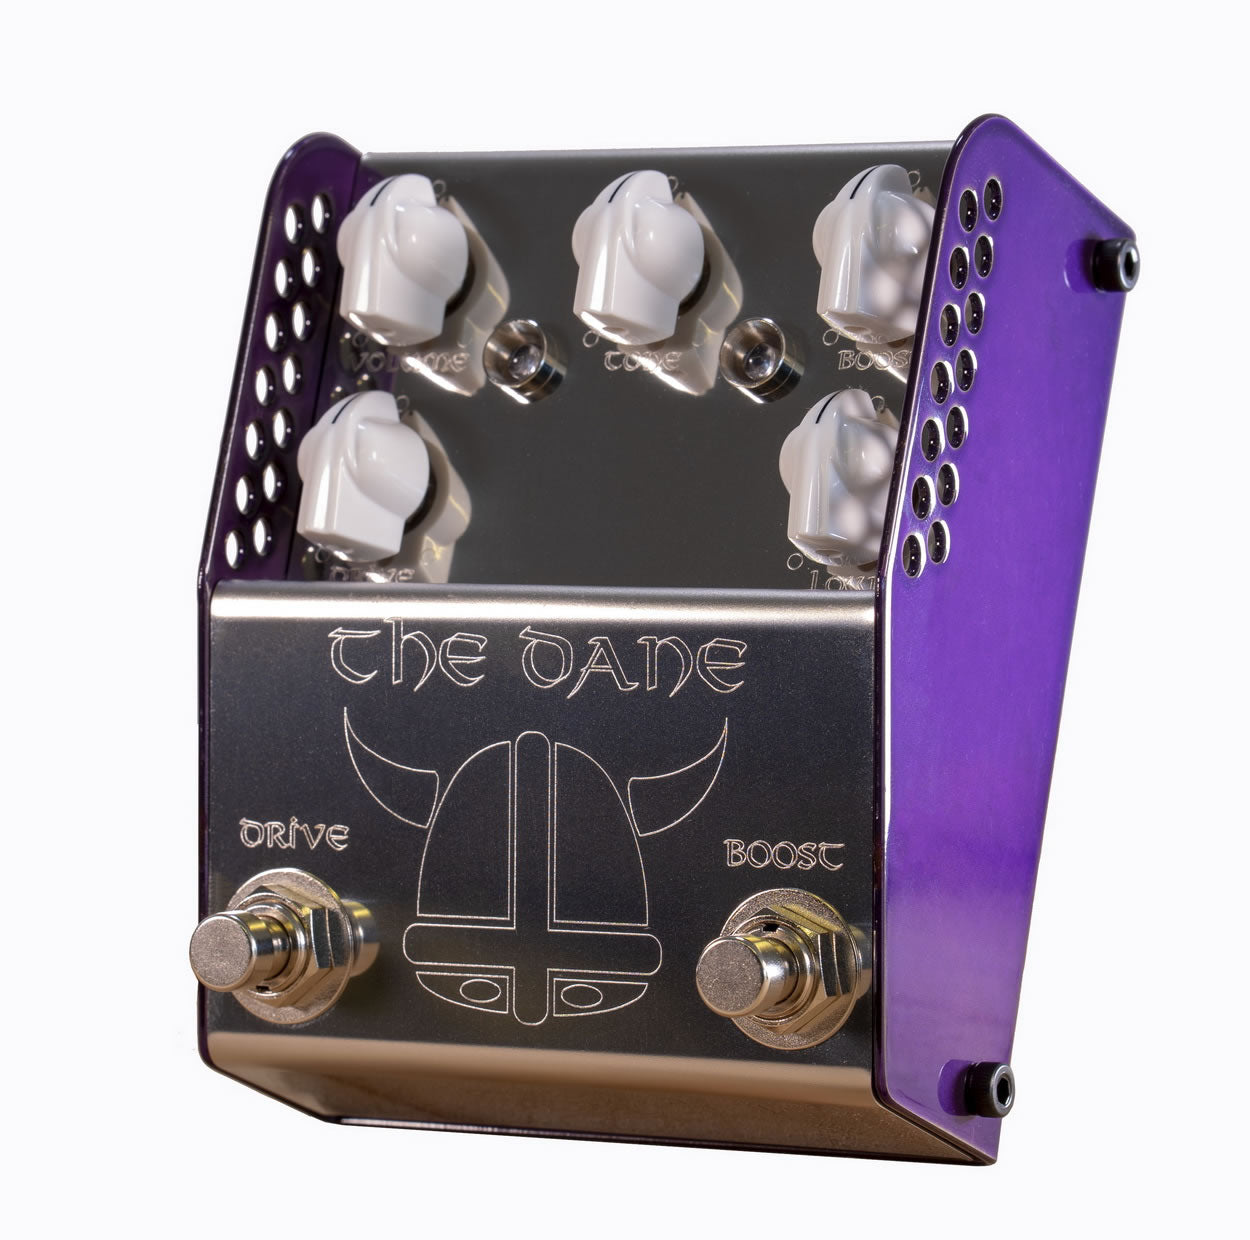 ThorpyFX The Dane Overdrive & Booster Guitar Effects Pedal